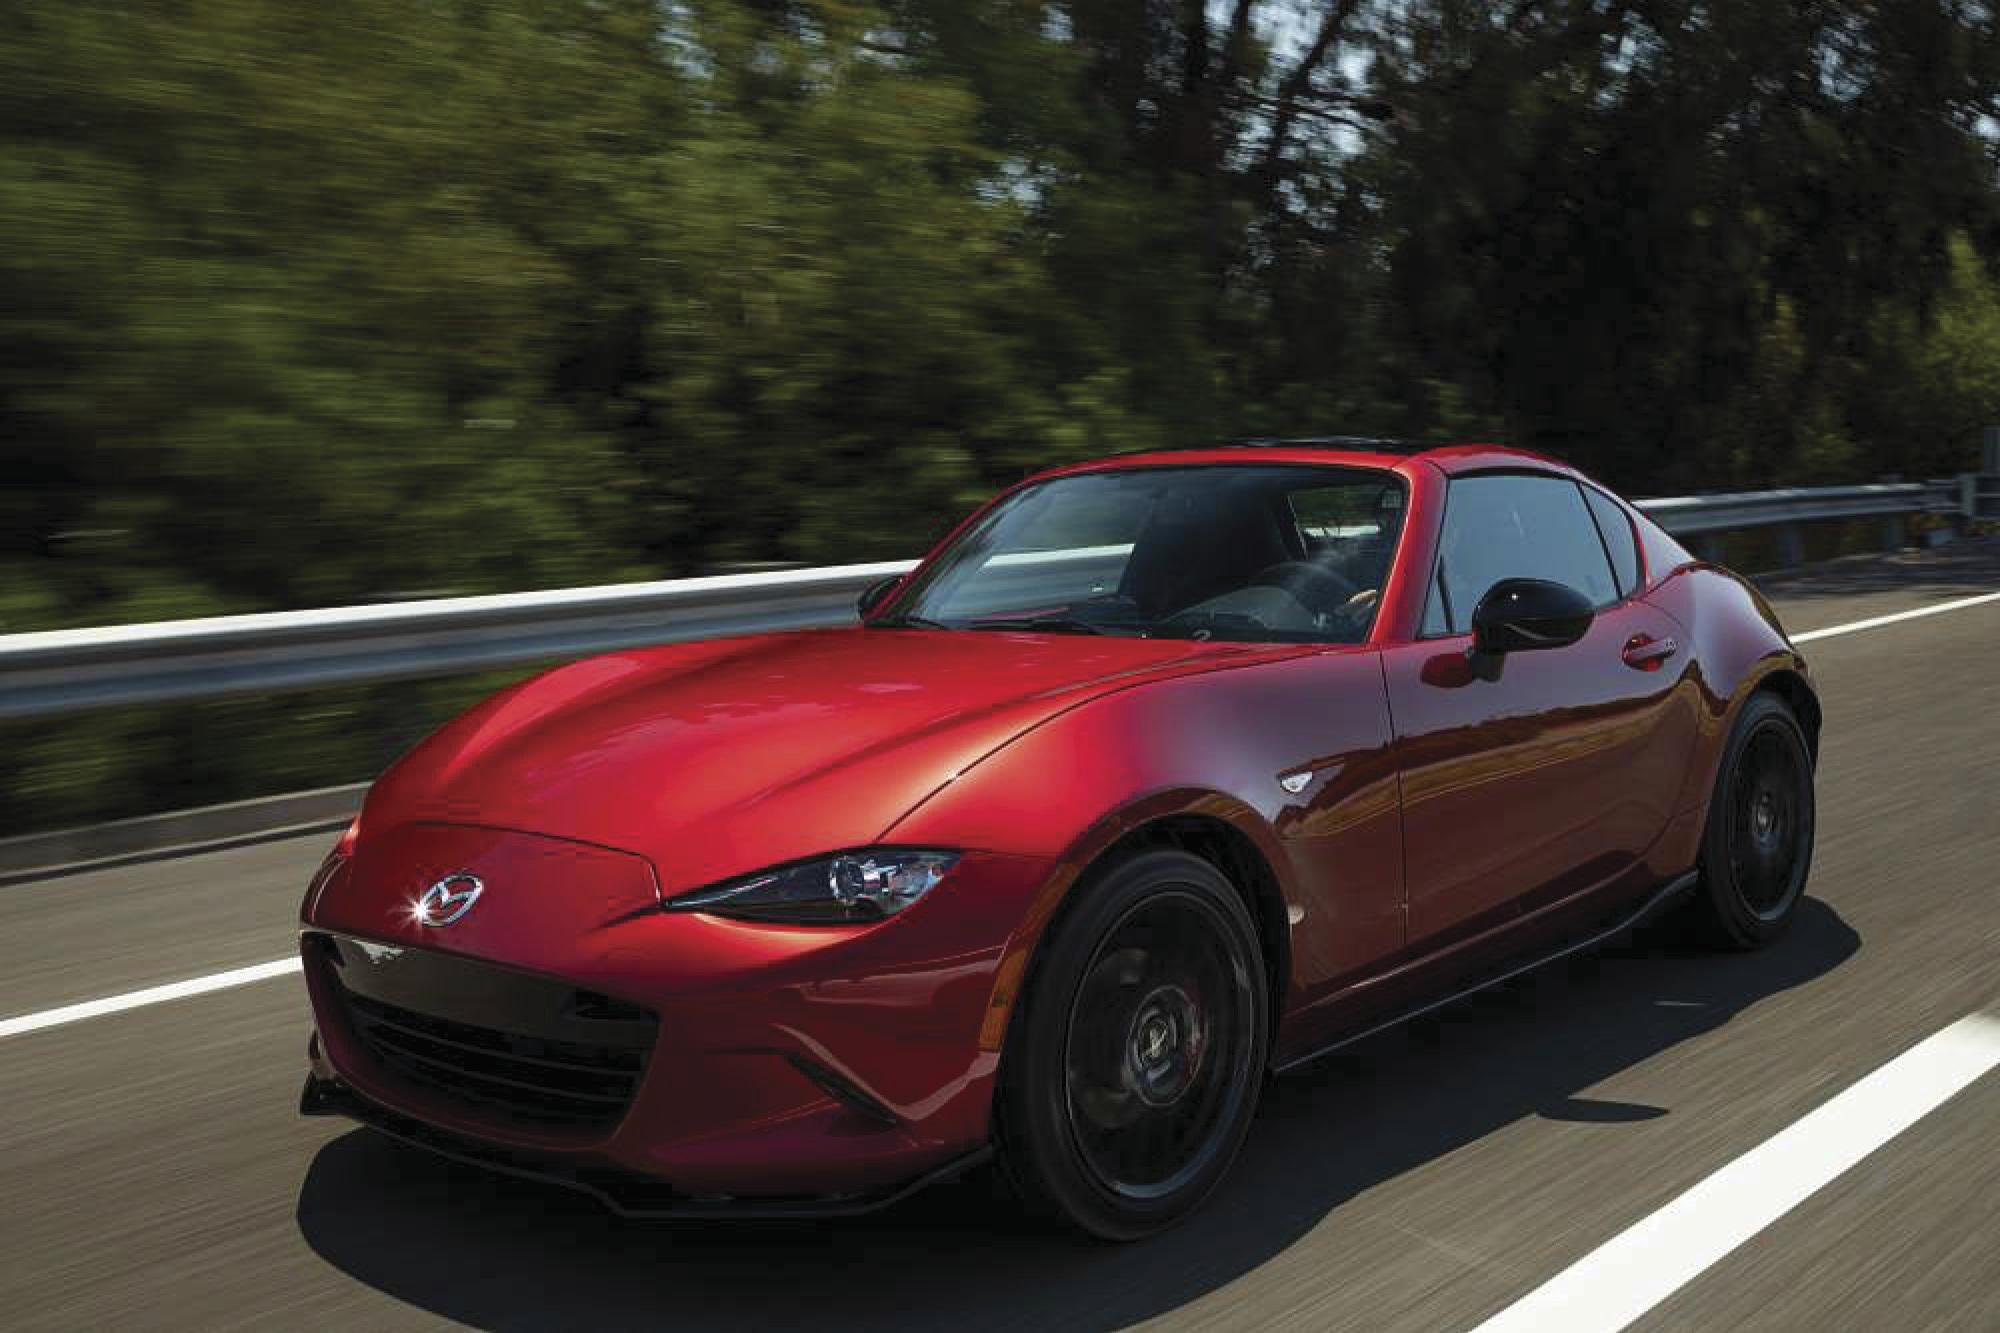 Mazda's 181-hp 2019 MX-5 roadster offers retractable roof